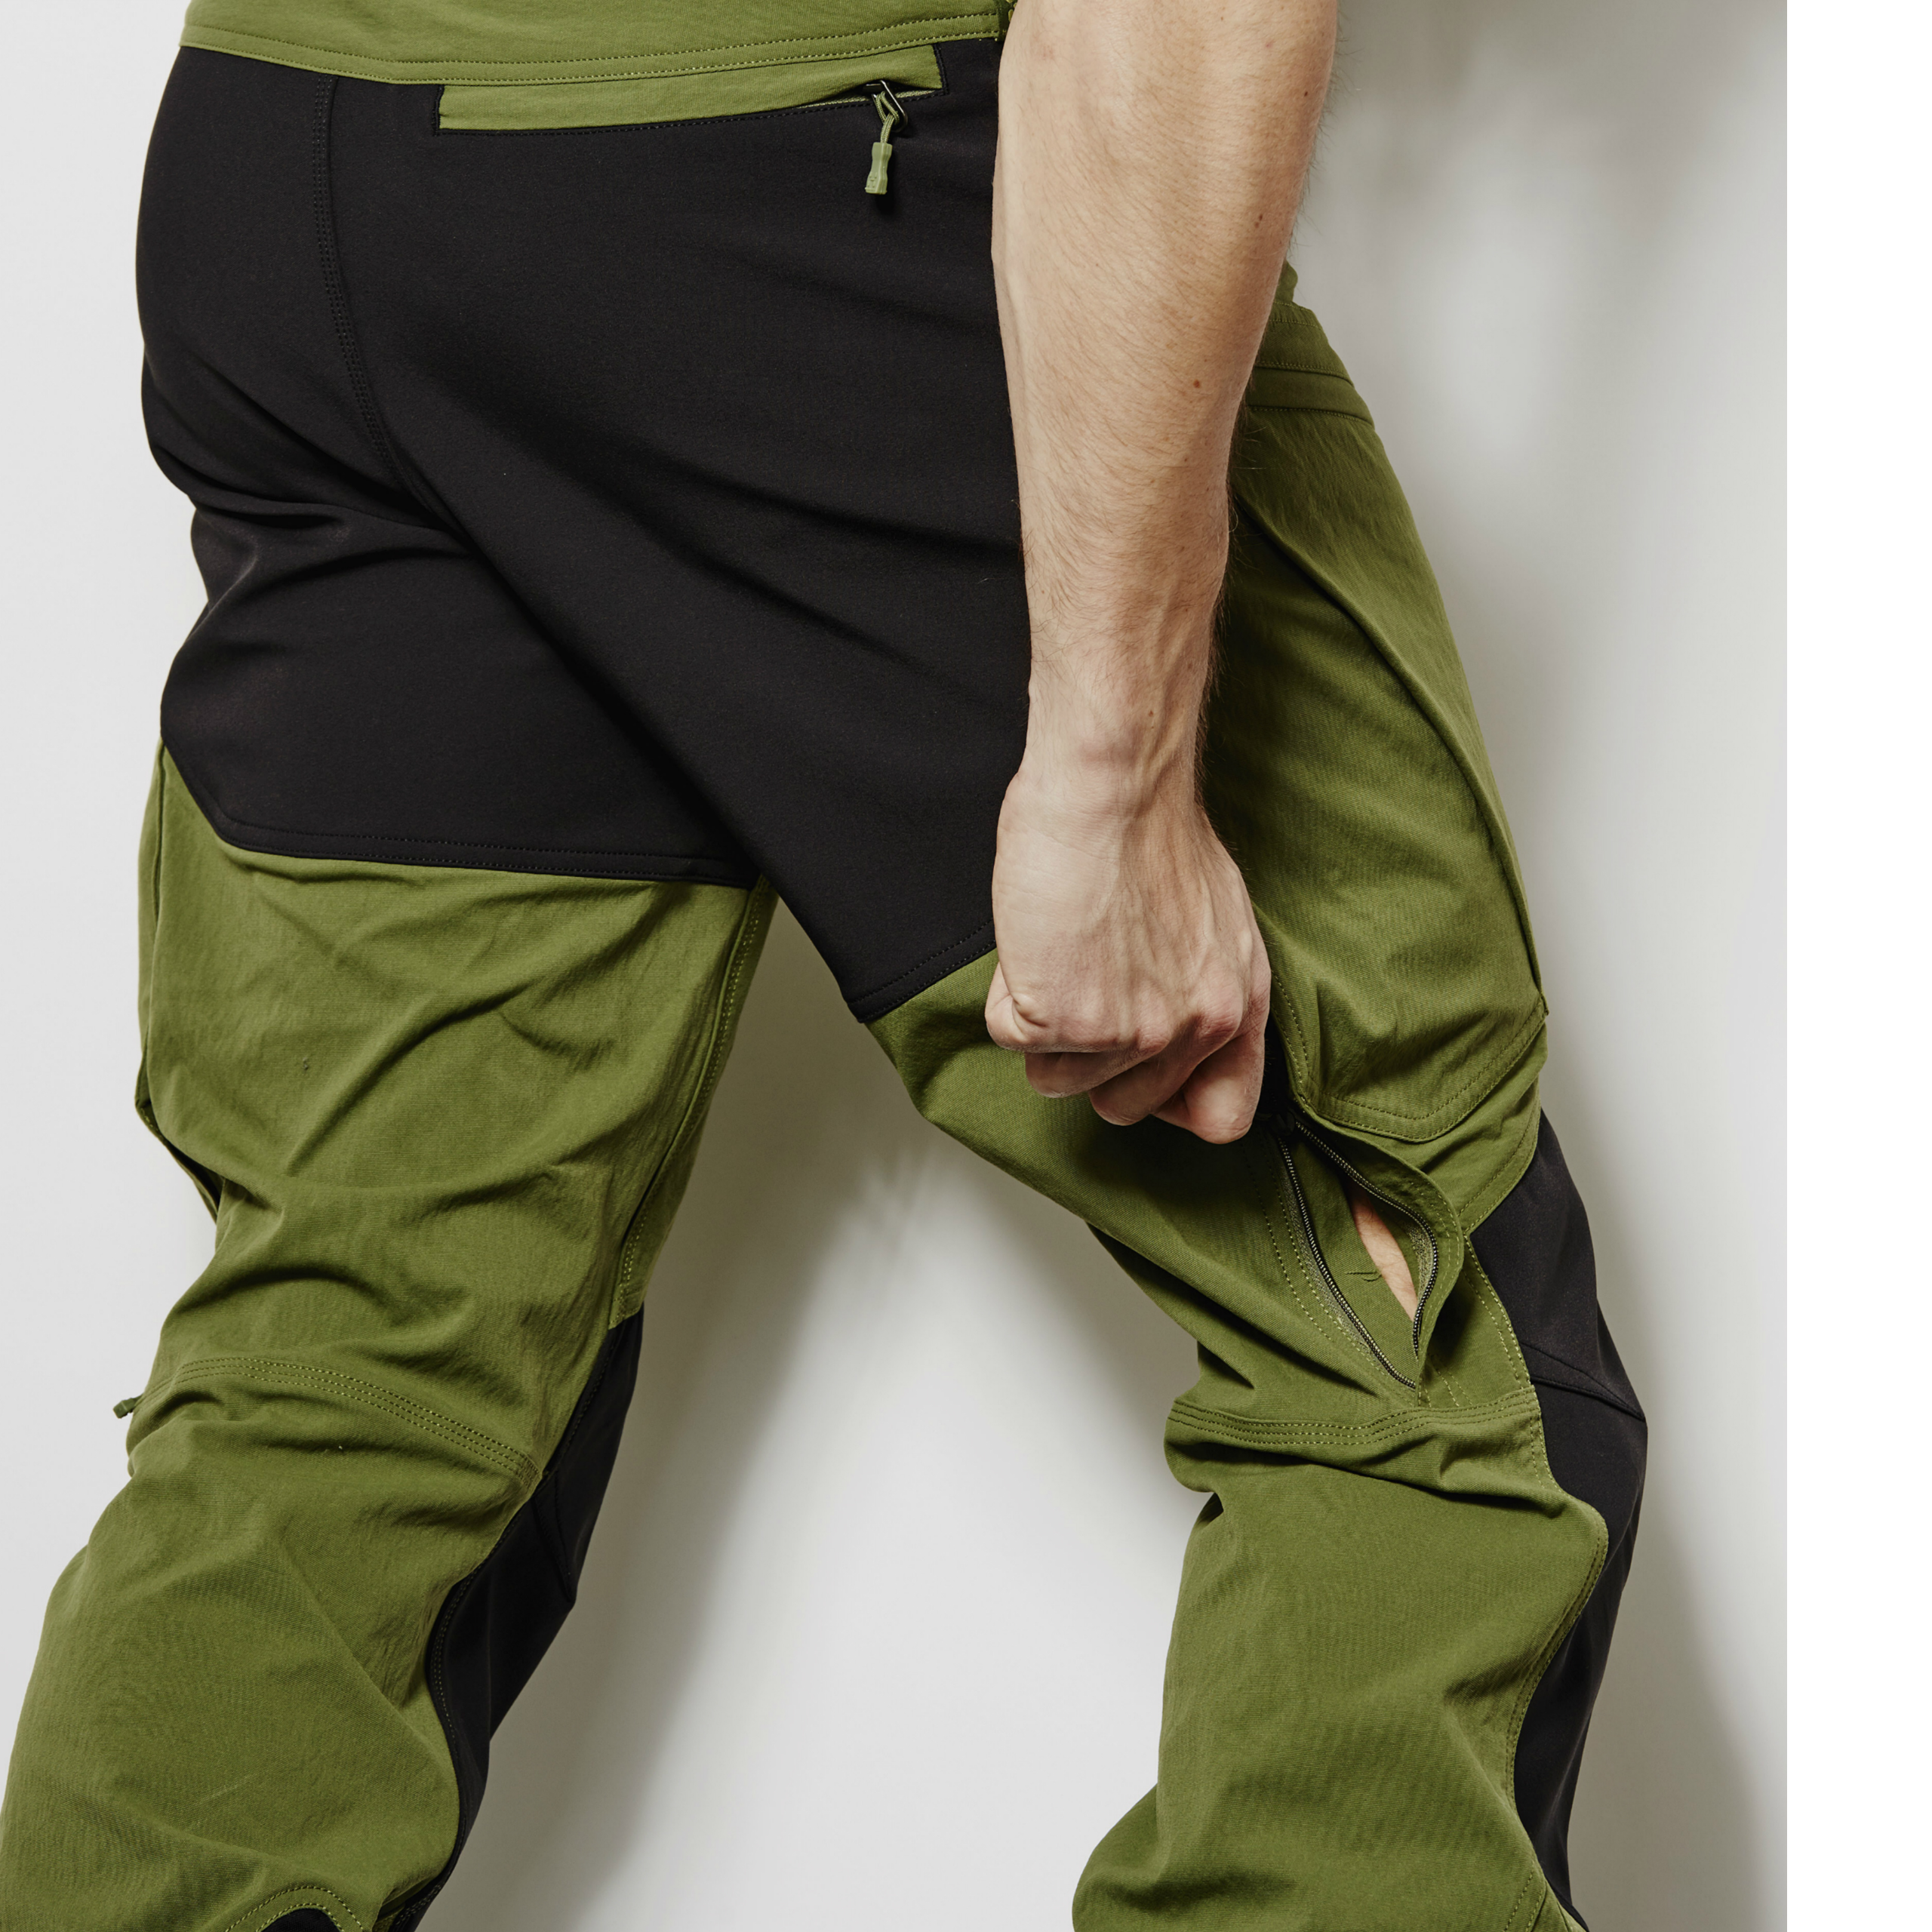 Rugged Ii Mountain Pant Men Haglofs Mens Pants Trousers Details Pants